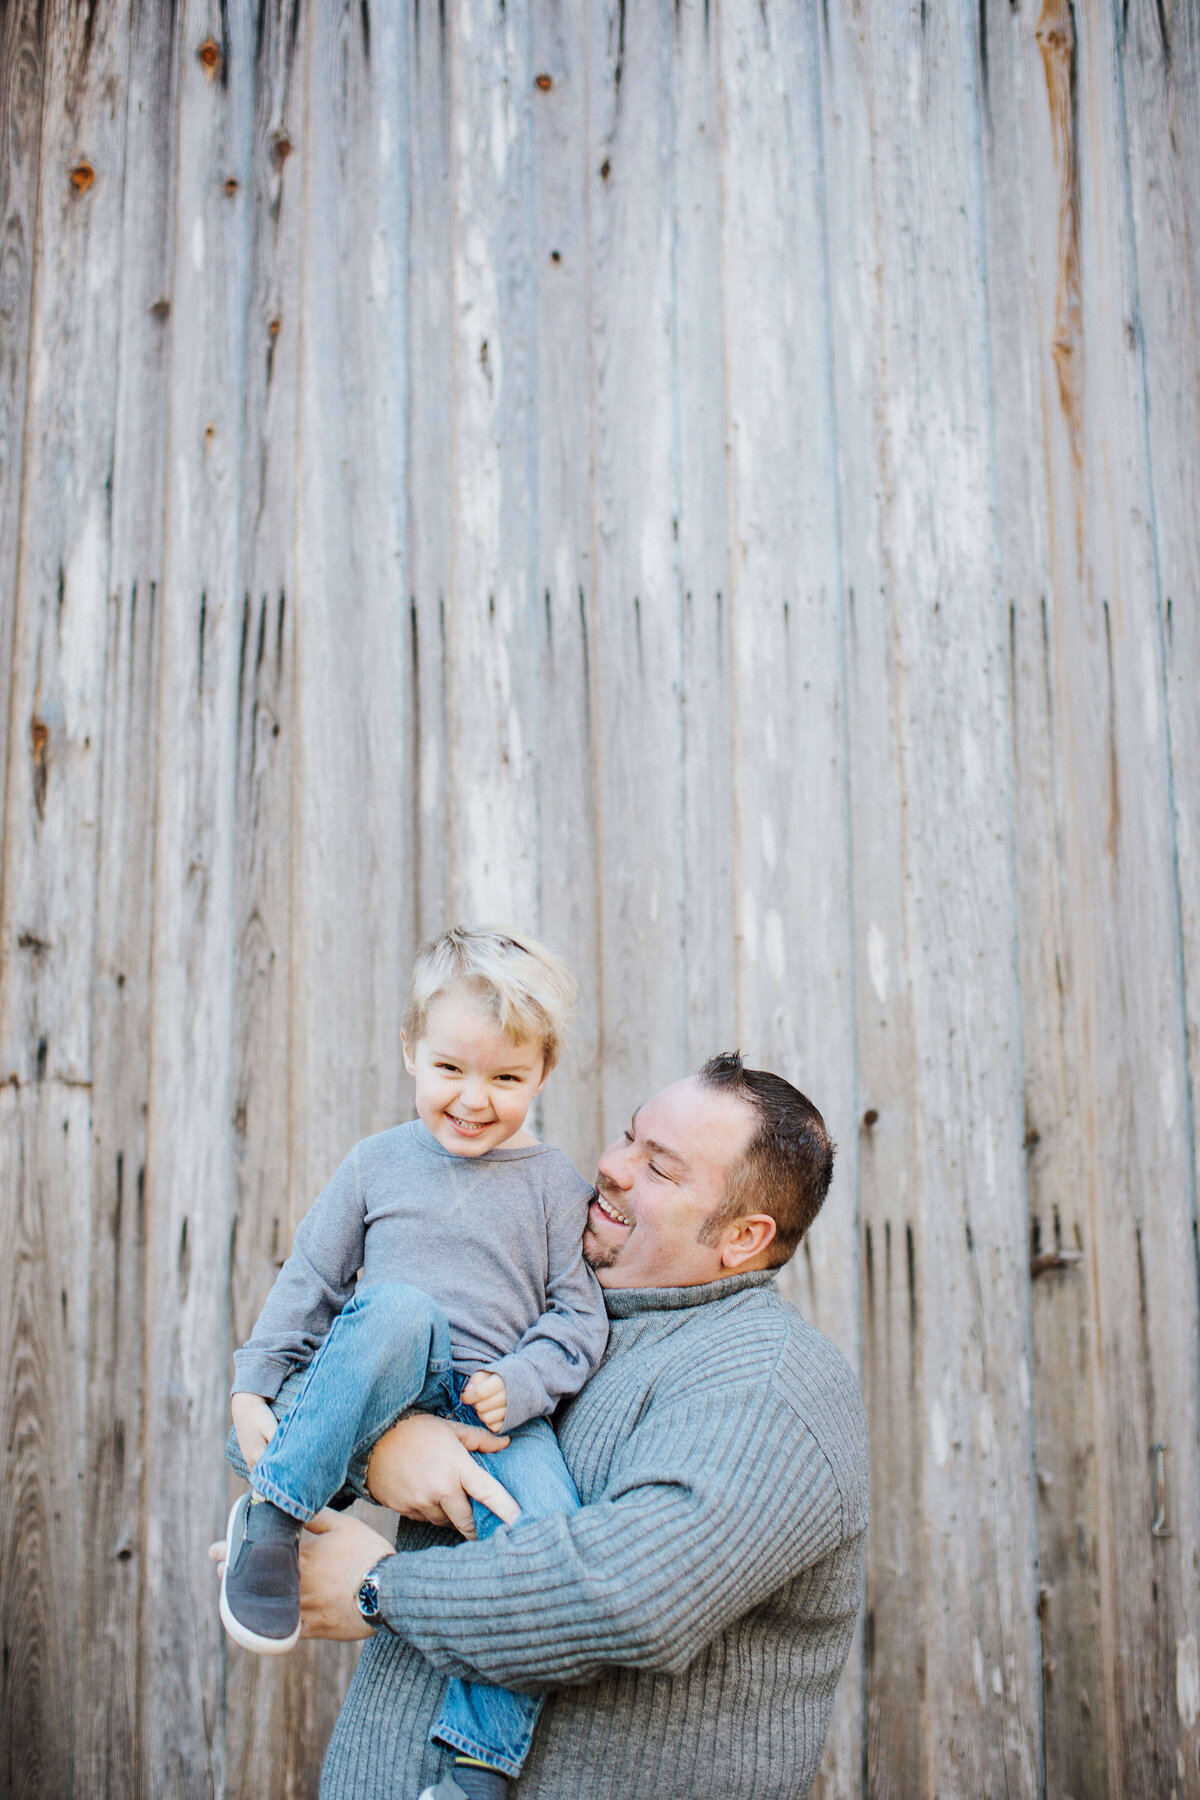 Izzy + Co. Savannah Family and Lifestyle Photographers